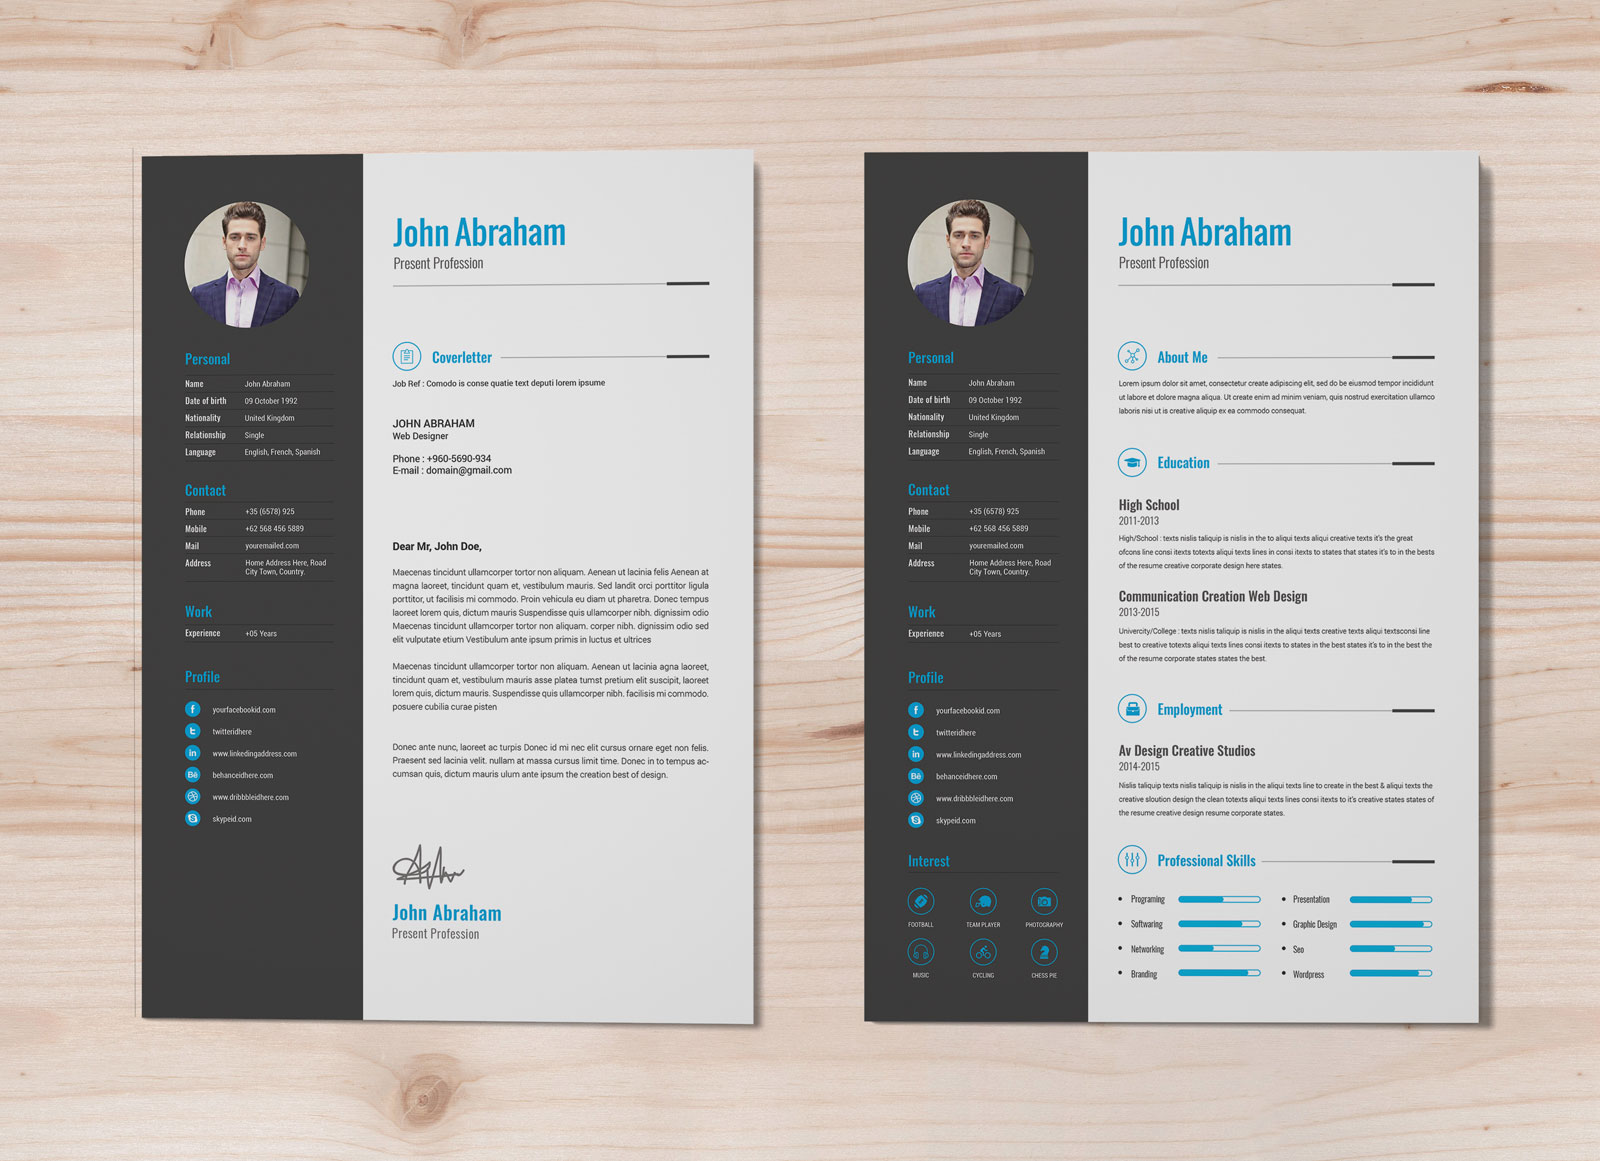 Indesign Resume Template Free Professional Resume Template Cover Design In Indd Psd Ai Word Docx 1 indesign resume template|wikiresume.com